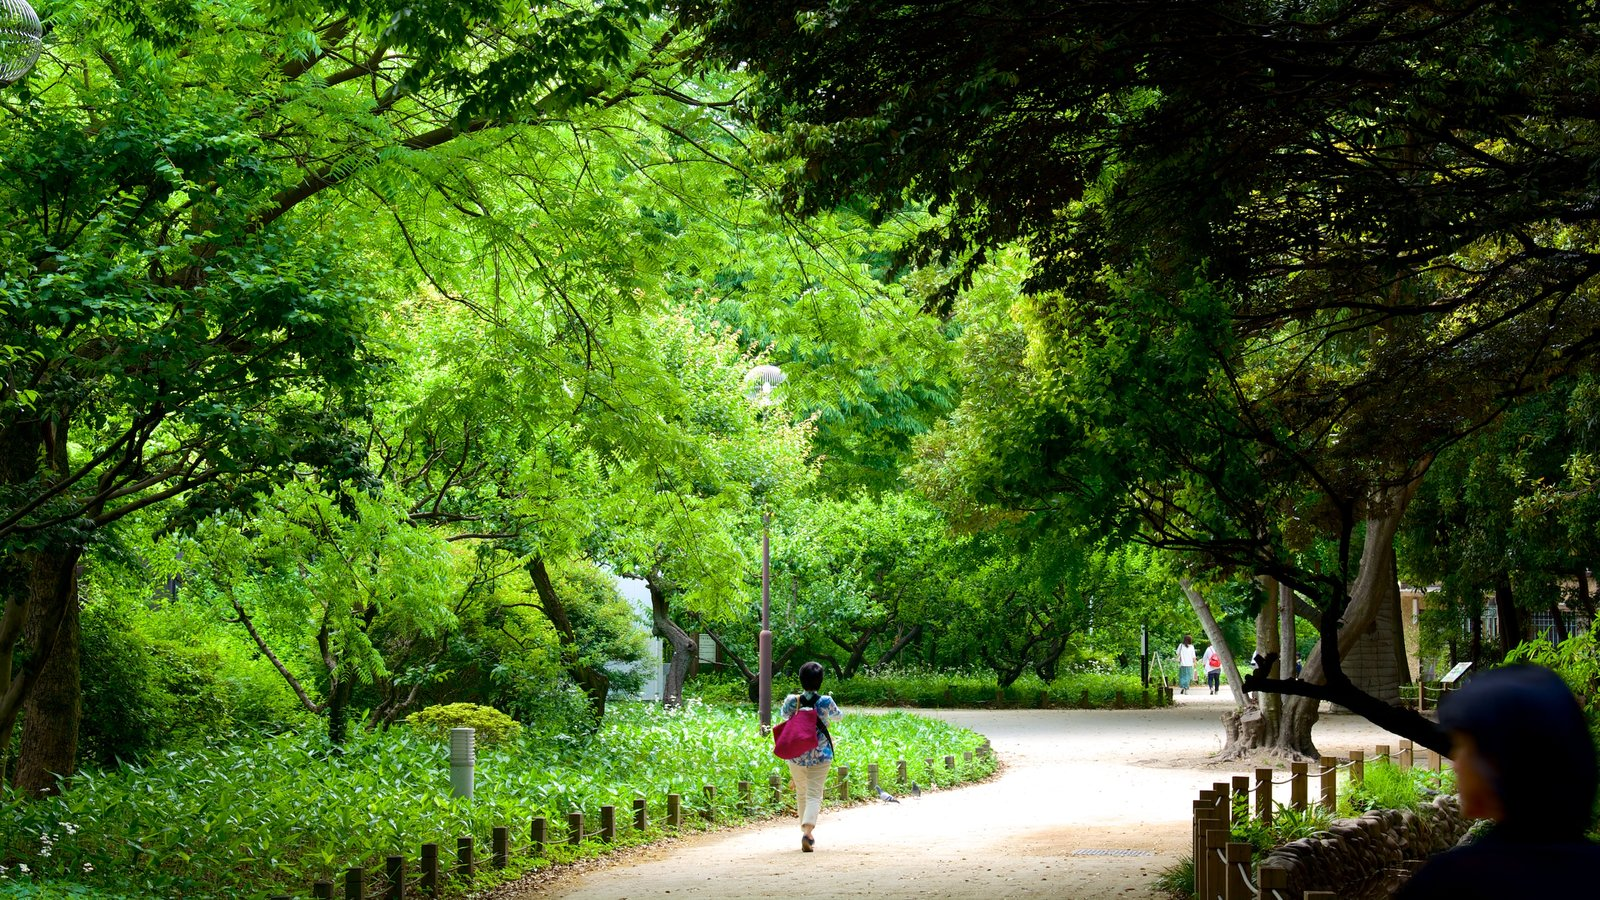 Gardens & Parks Pictures: View Images of Tokyo